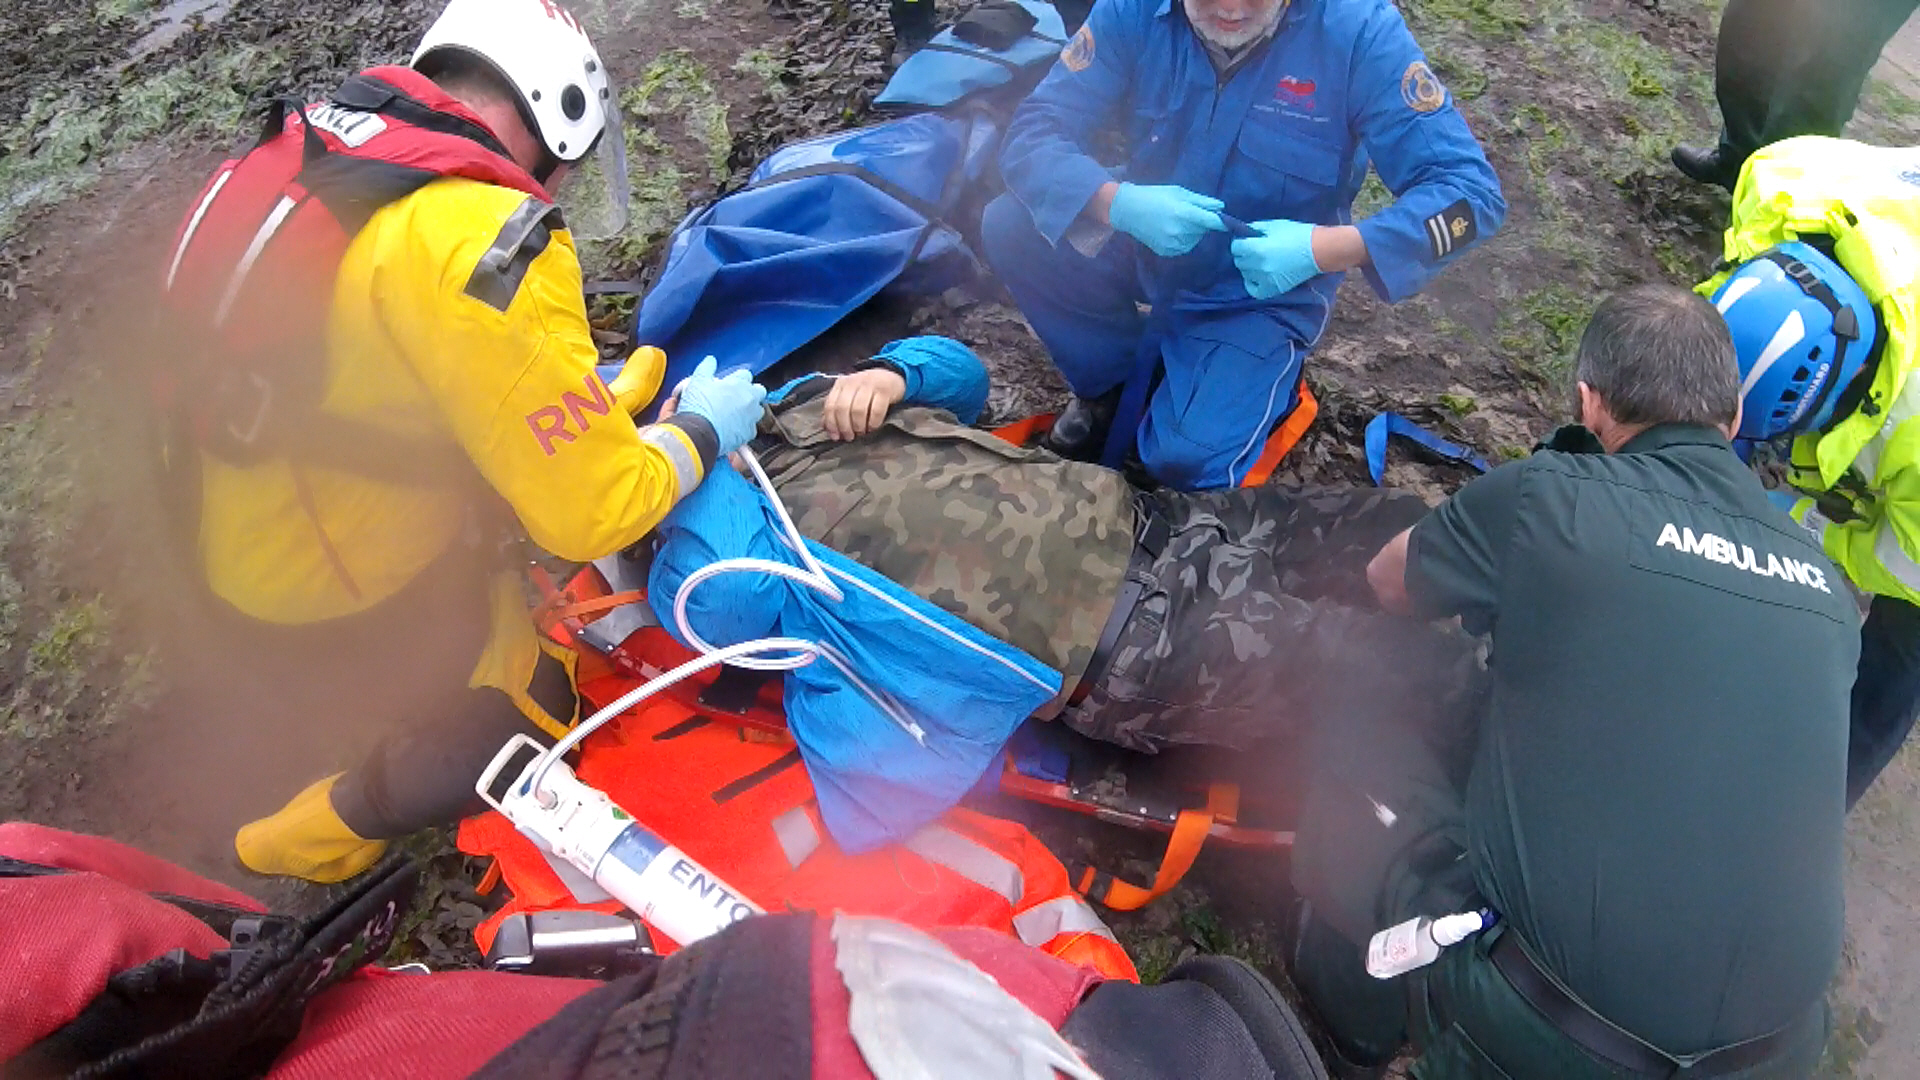 Crewman Jamie Forrester reassures the casualty while paramedics strap the broken leg.